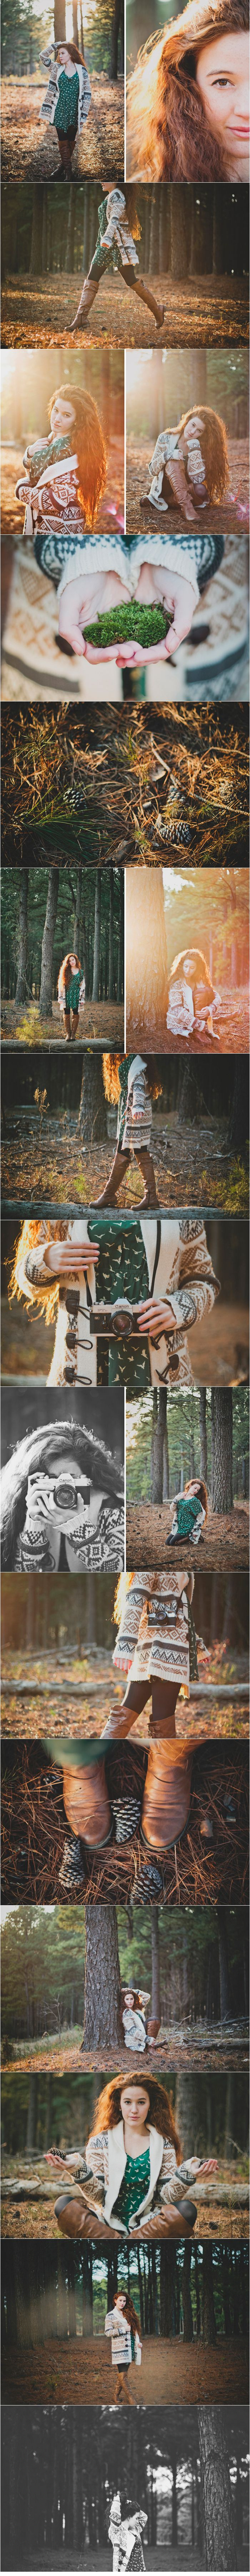 Featured Photographer | Evoking You #photogpinspiration